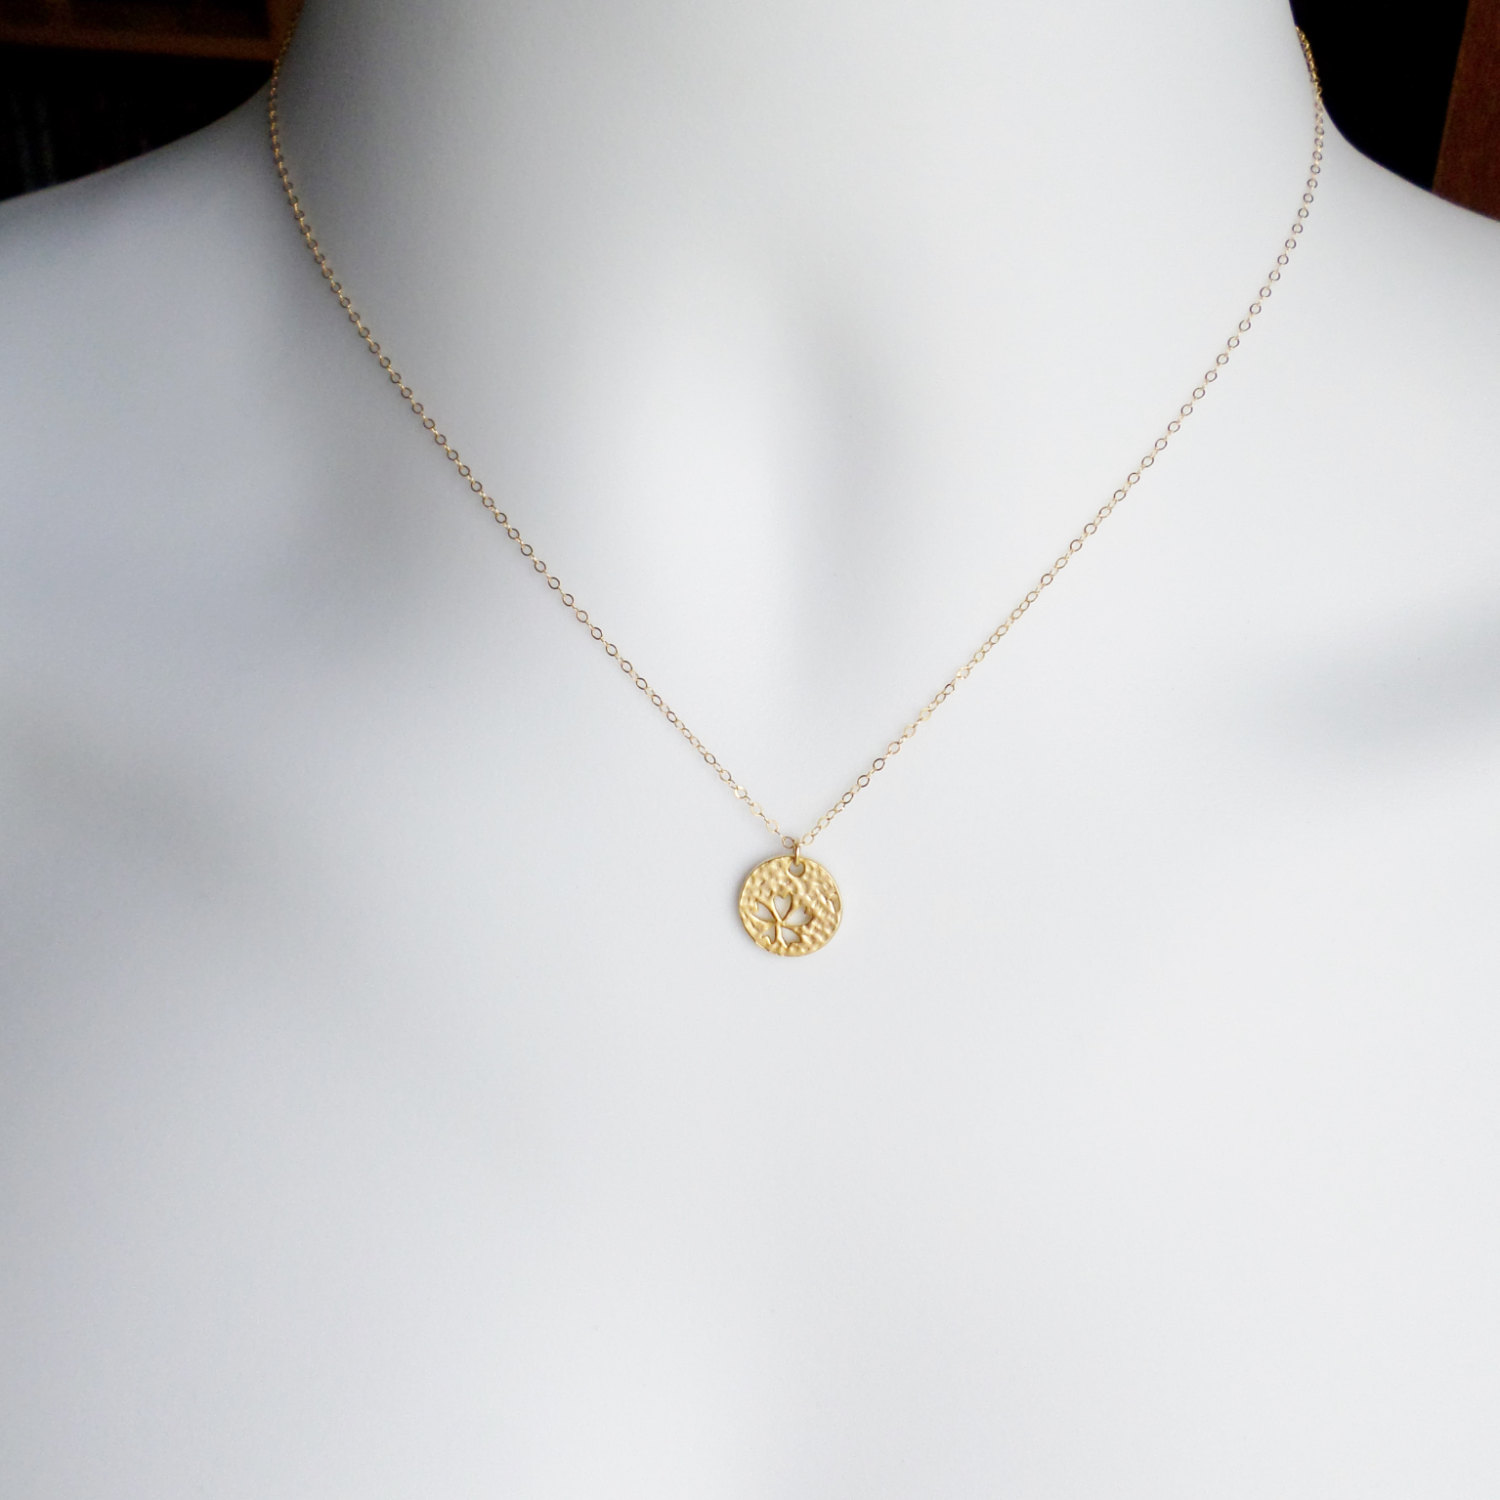 necklace pendant leaf gold clover cc chanel crystal four